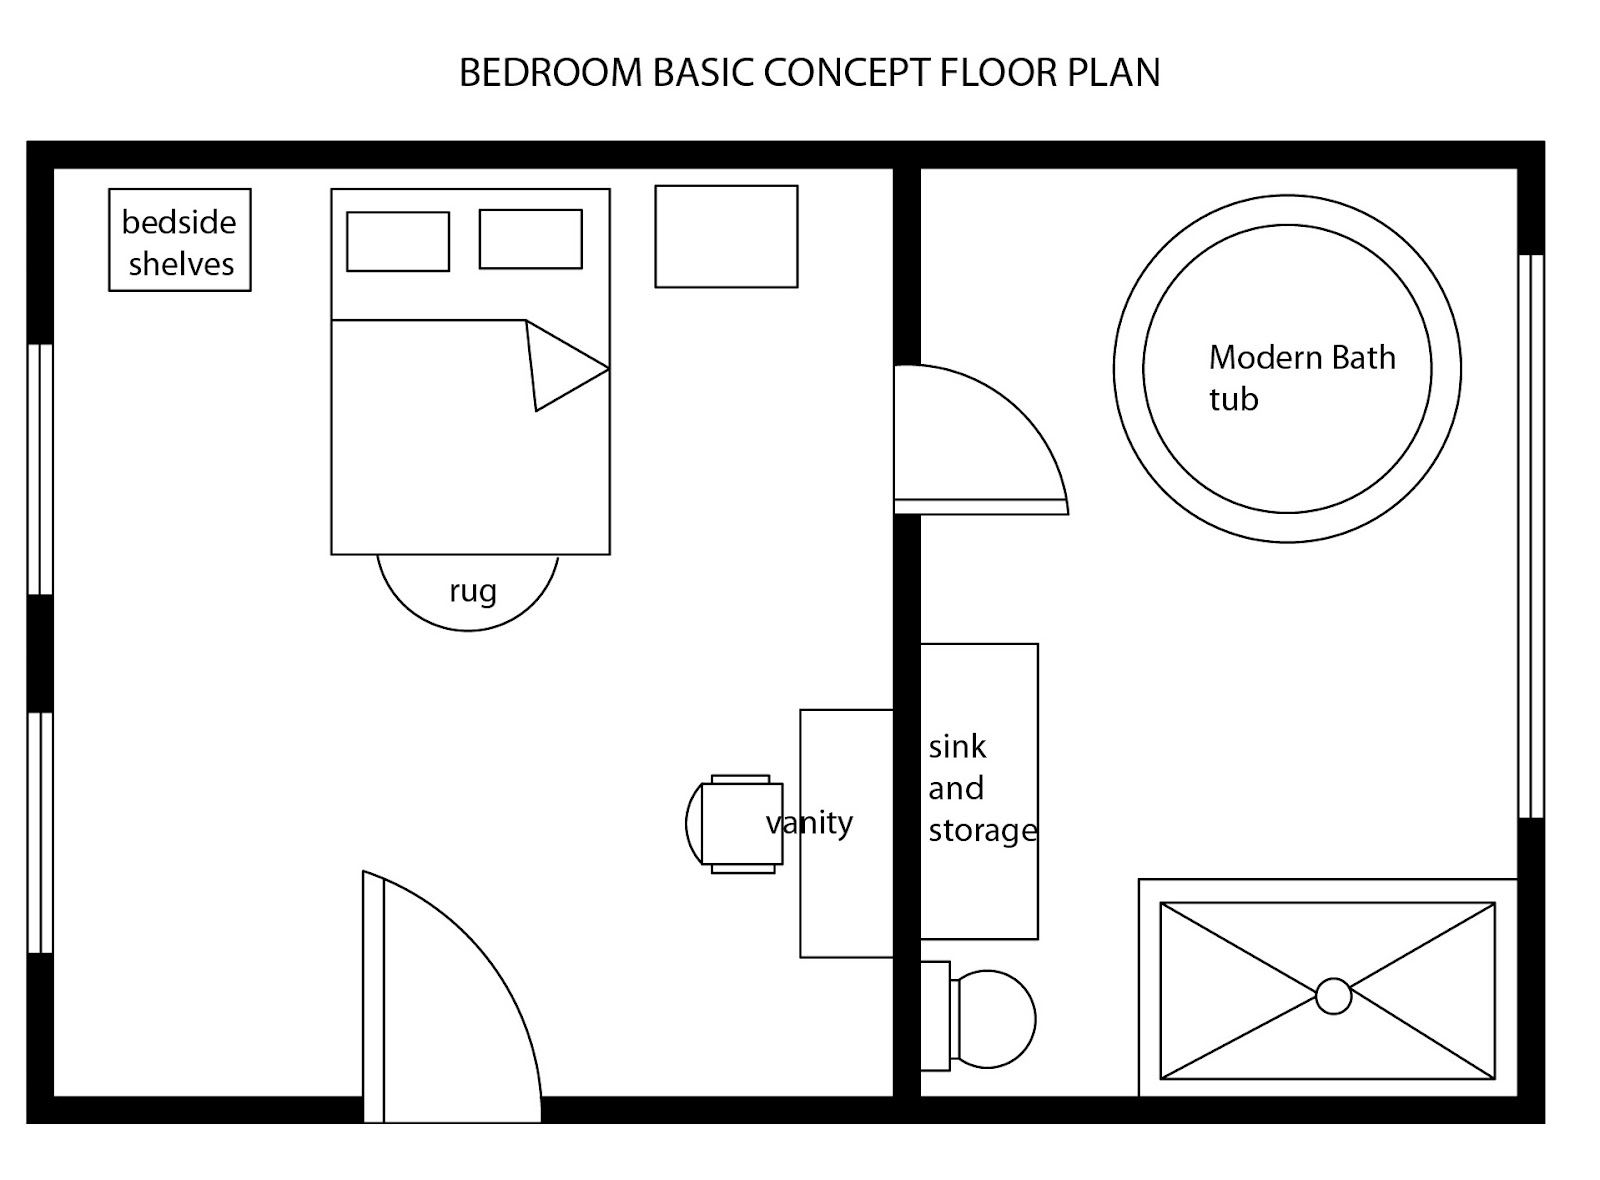 Interior design decor modern bedroom basic floor plan Bedroom plan design